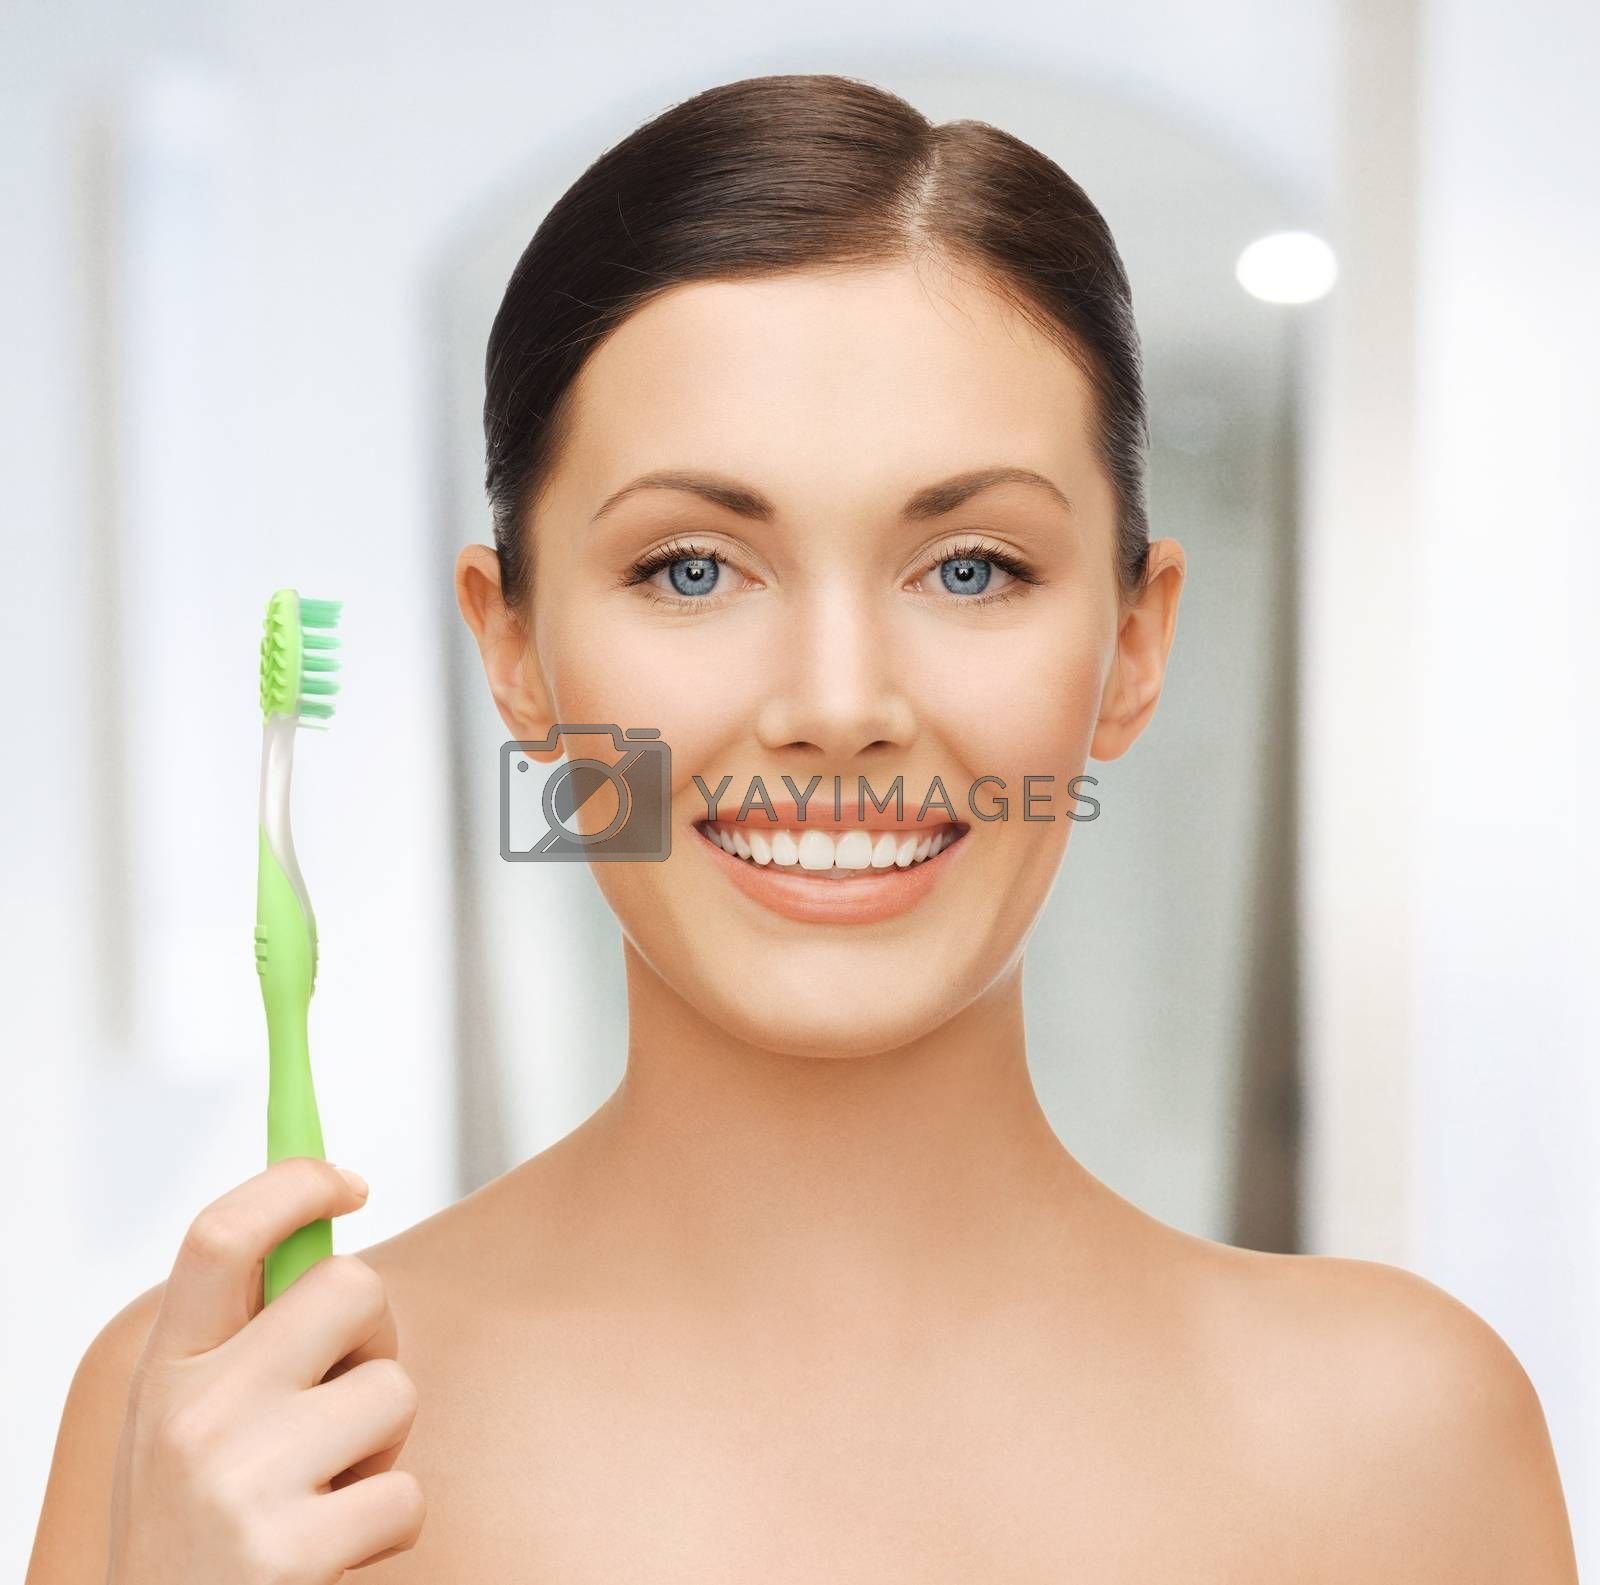 woman with toothbrush by dolgachov